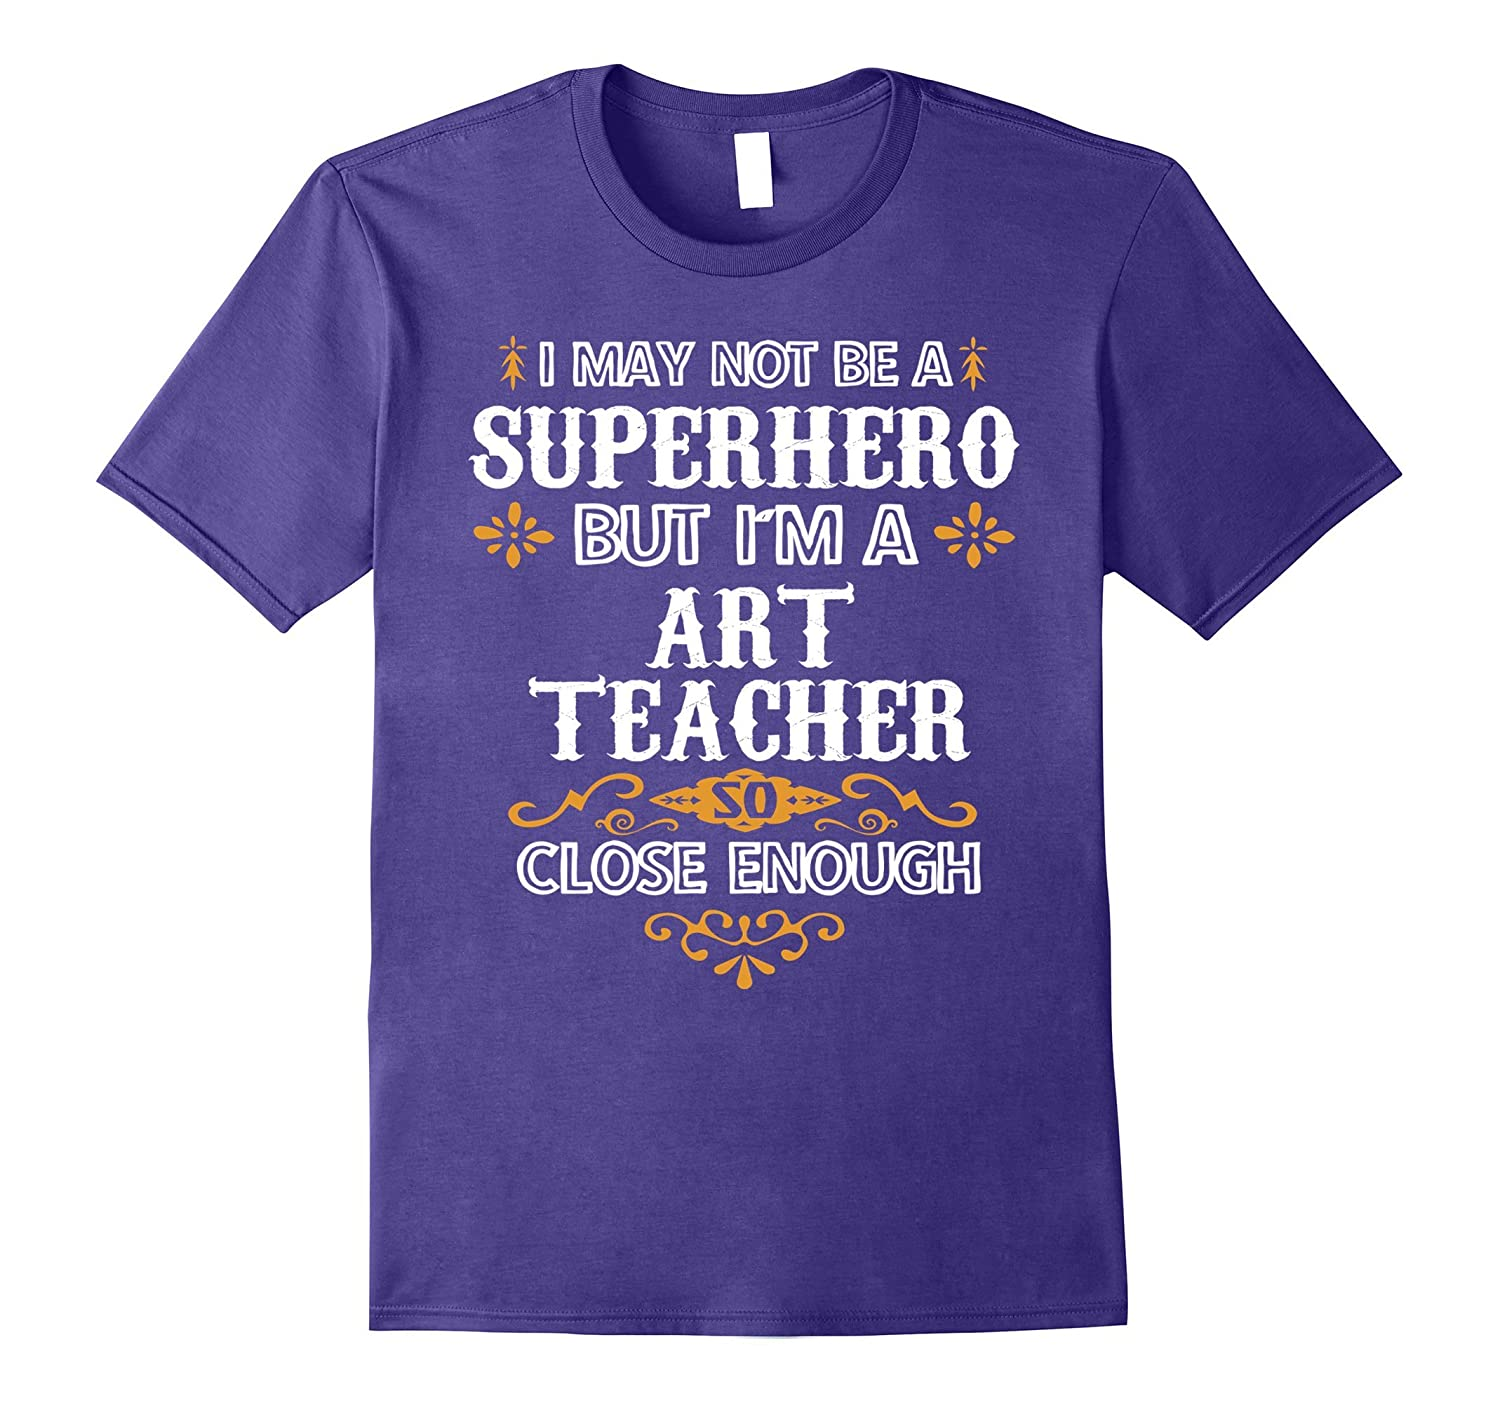 Art Teacher Shirt Not Superhero Funny School Gift T-Shirt-CD